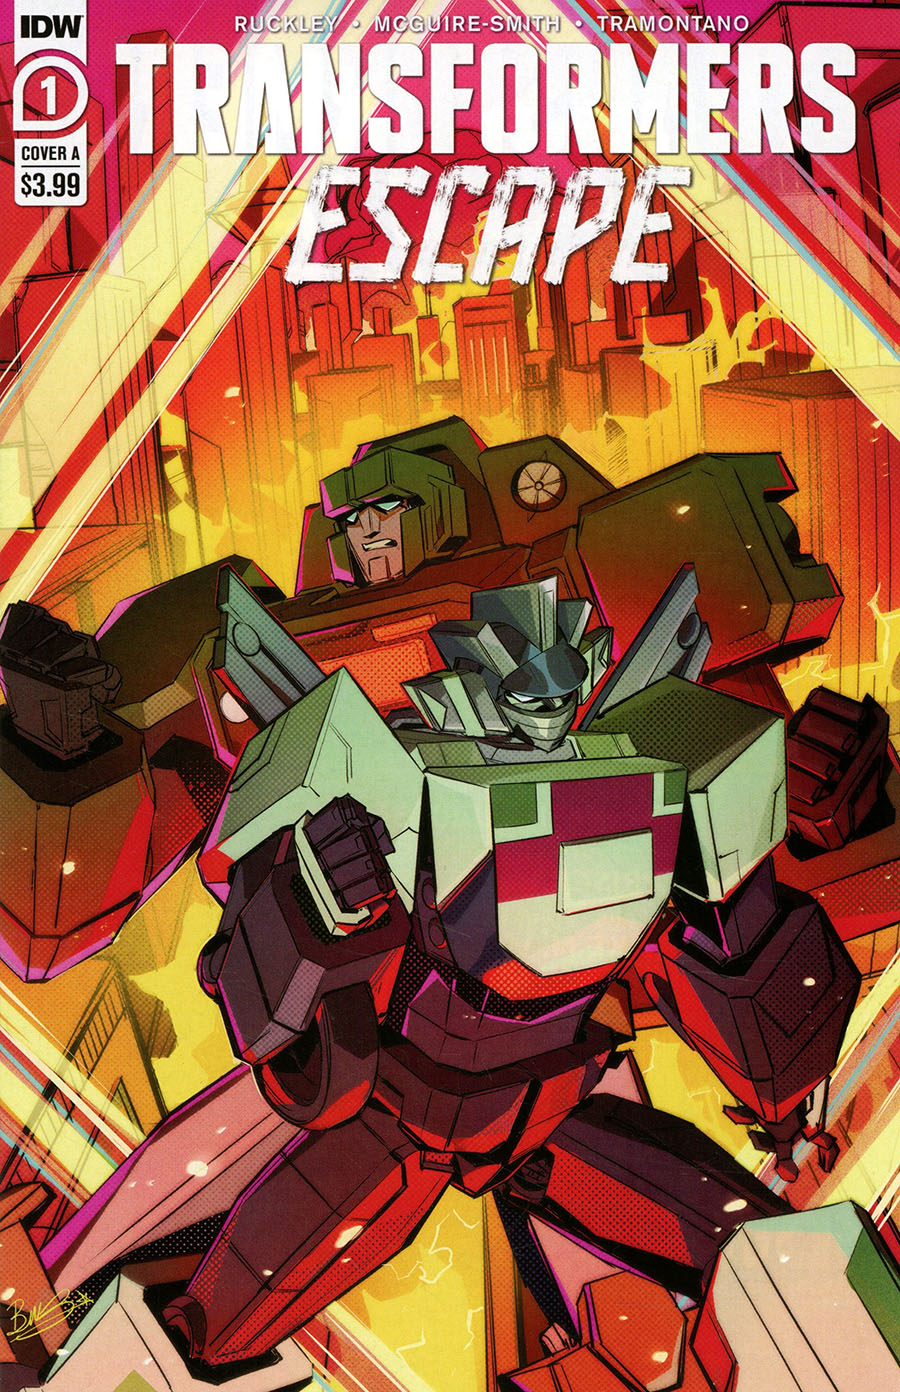 Transformers Escape #1 Cover A Regular Bethany McGuire-Smith Cover